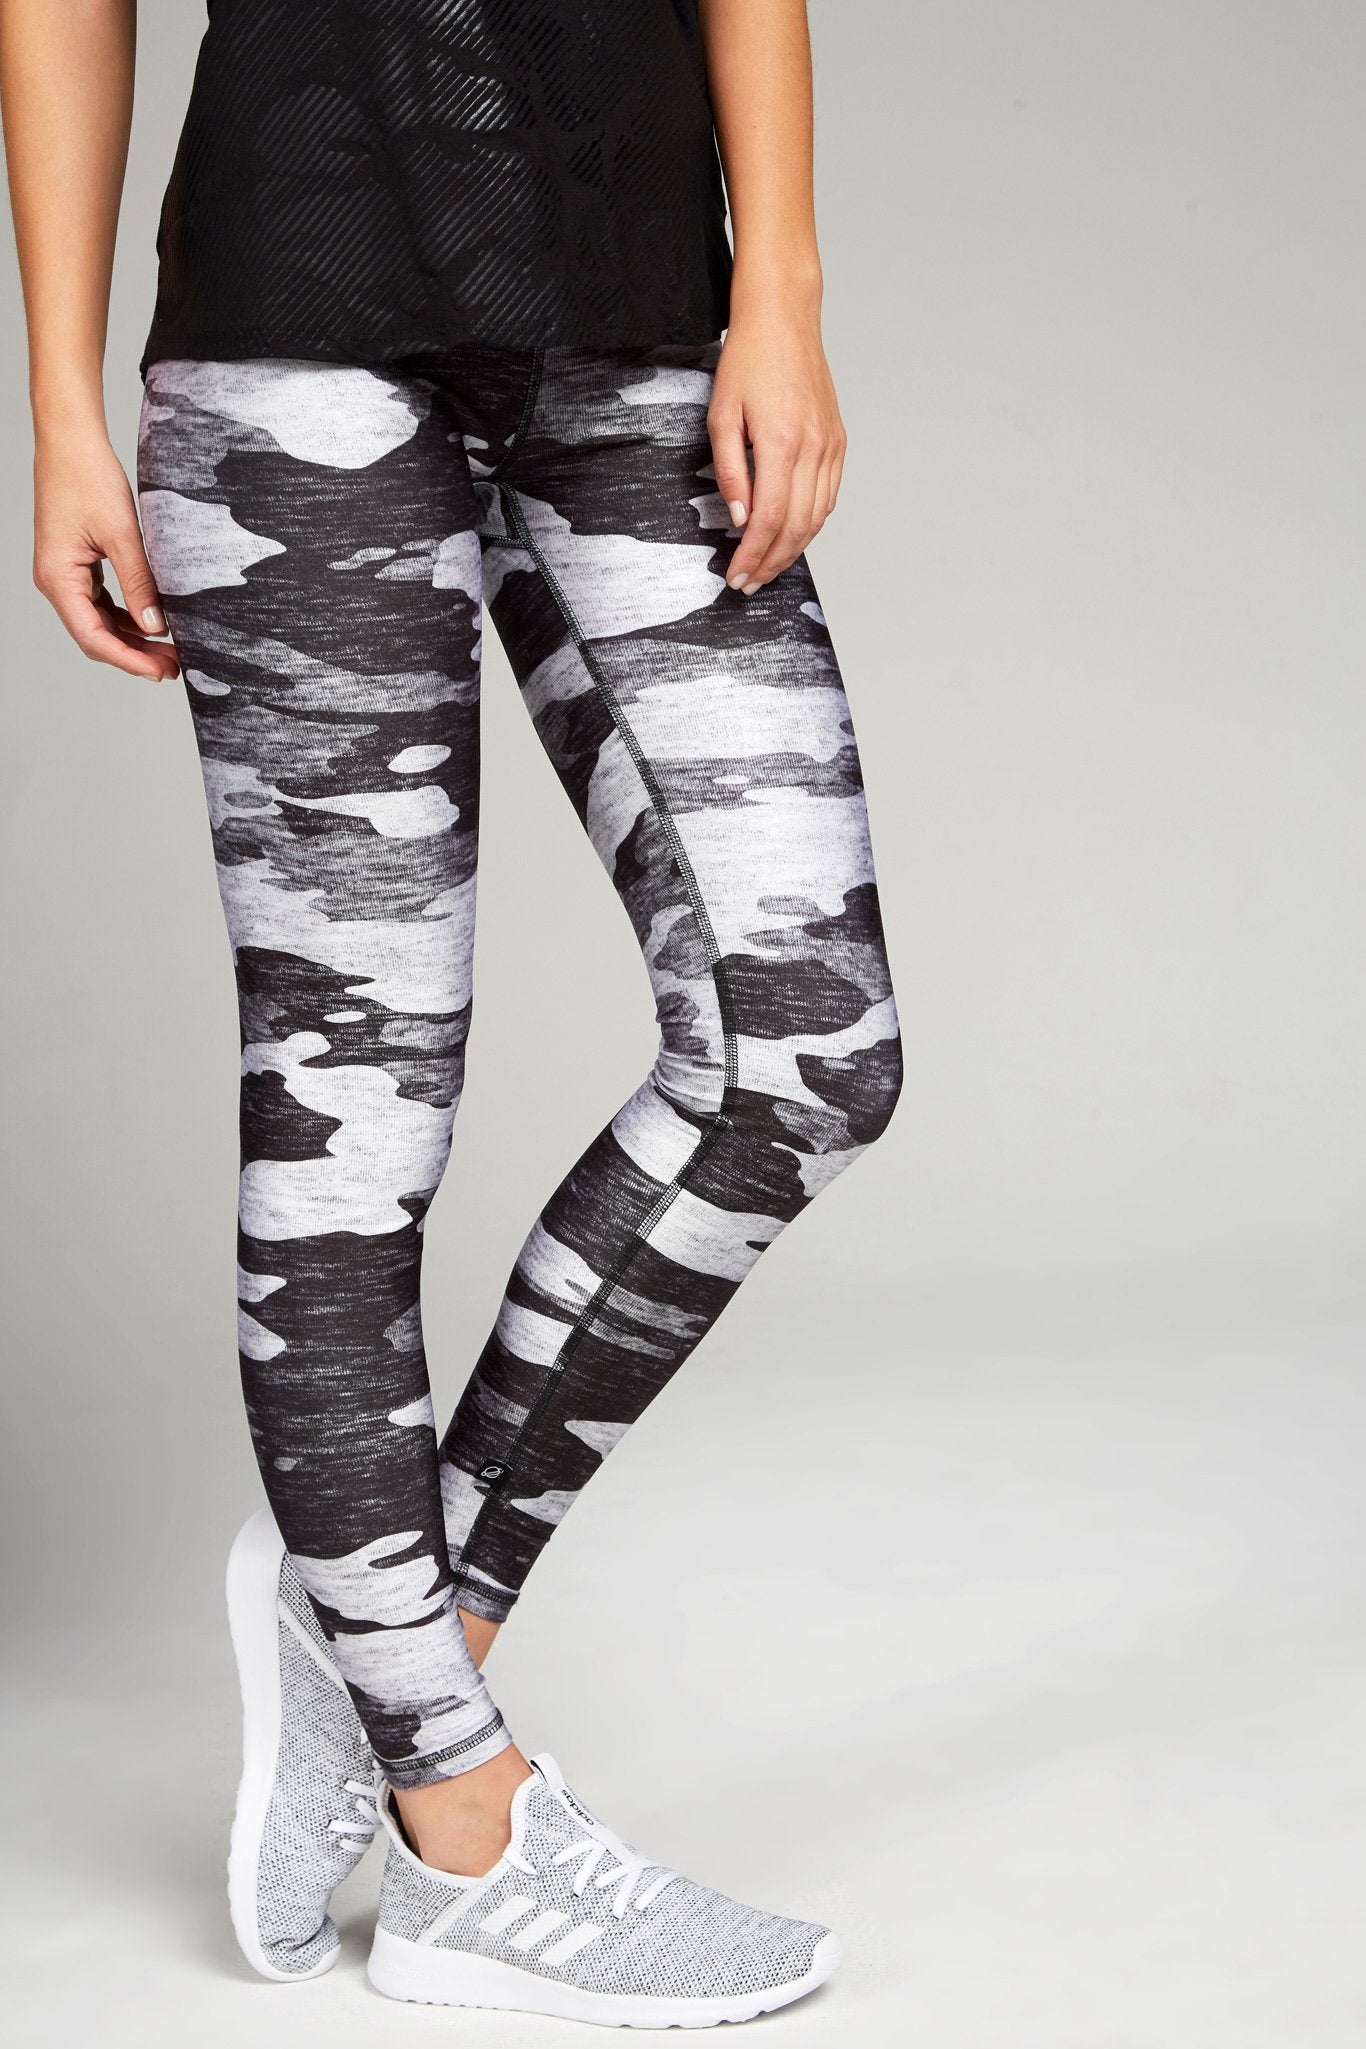 Heathered Gray Camo Hi-Shine Leggings